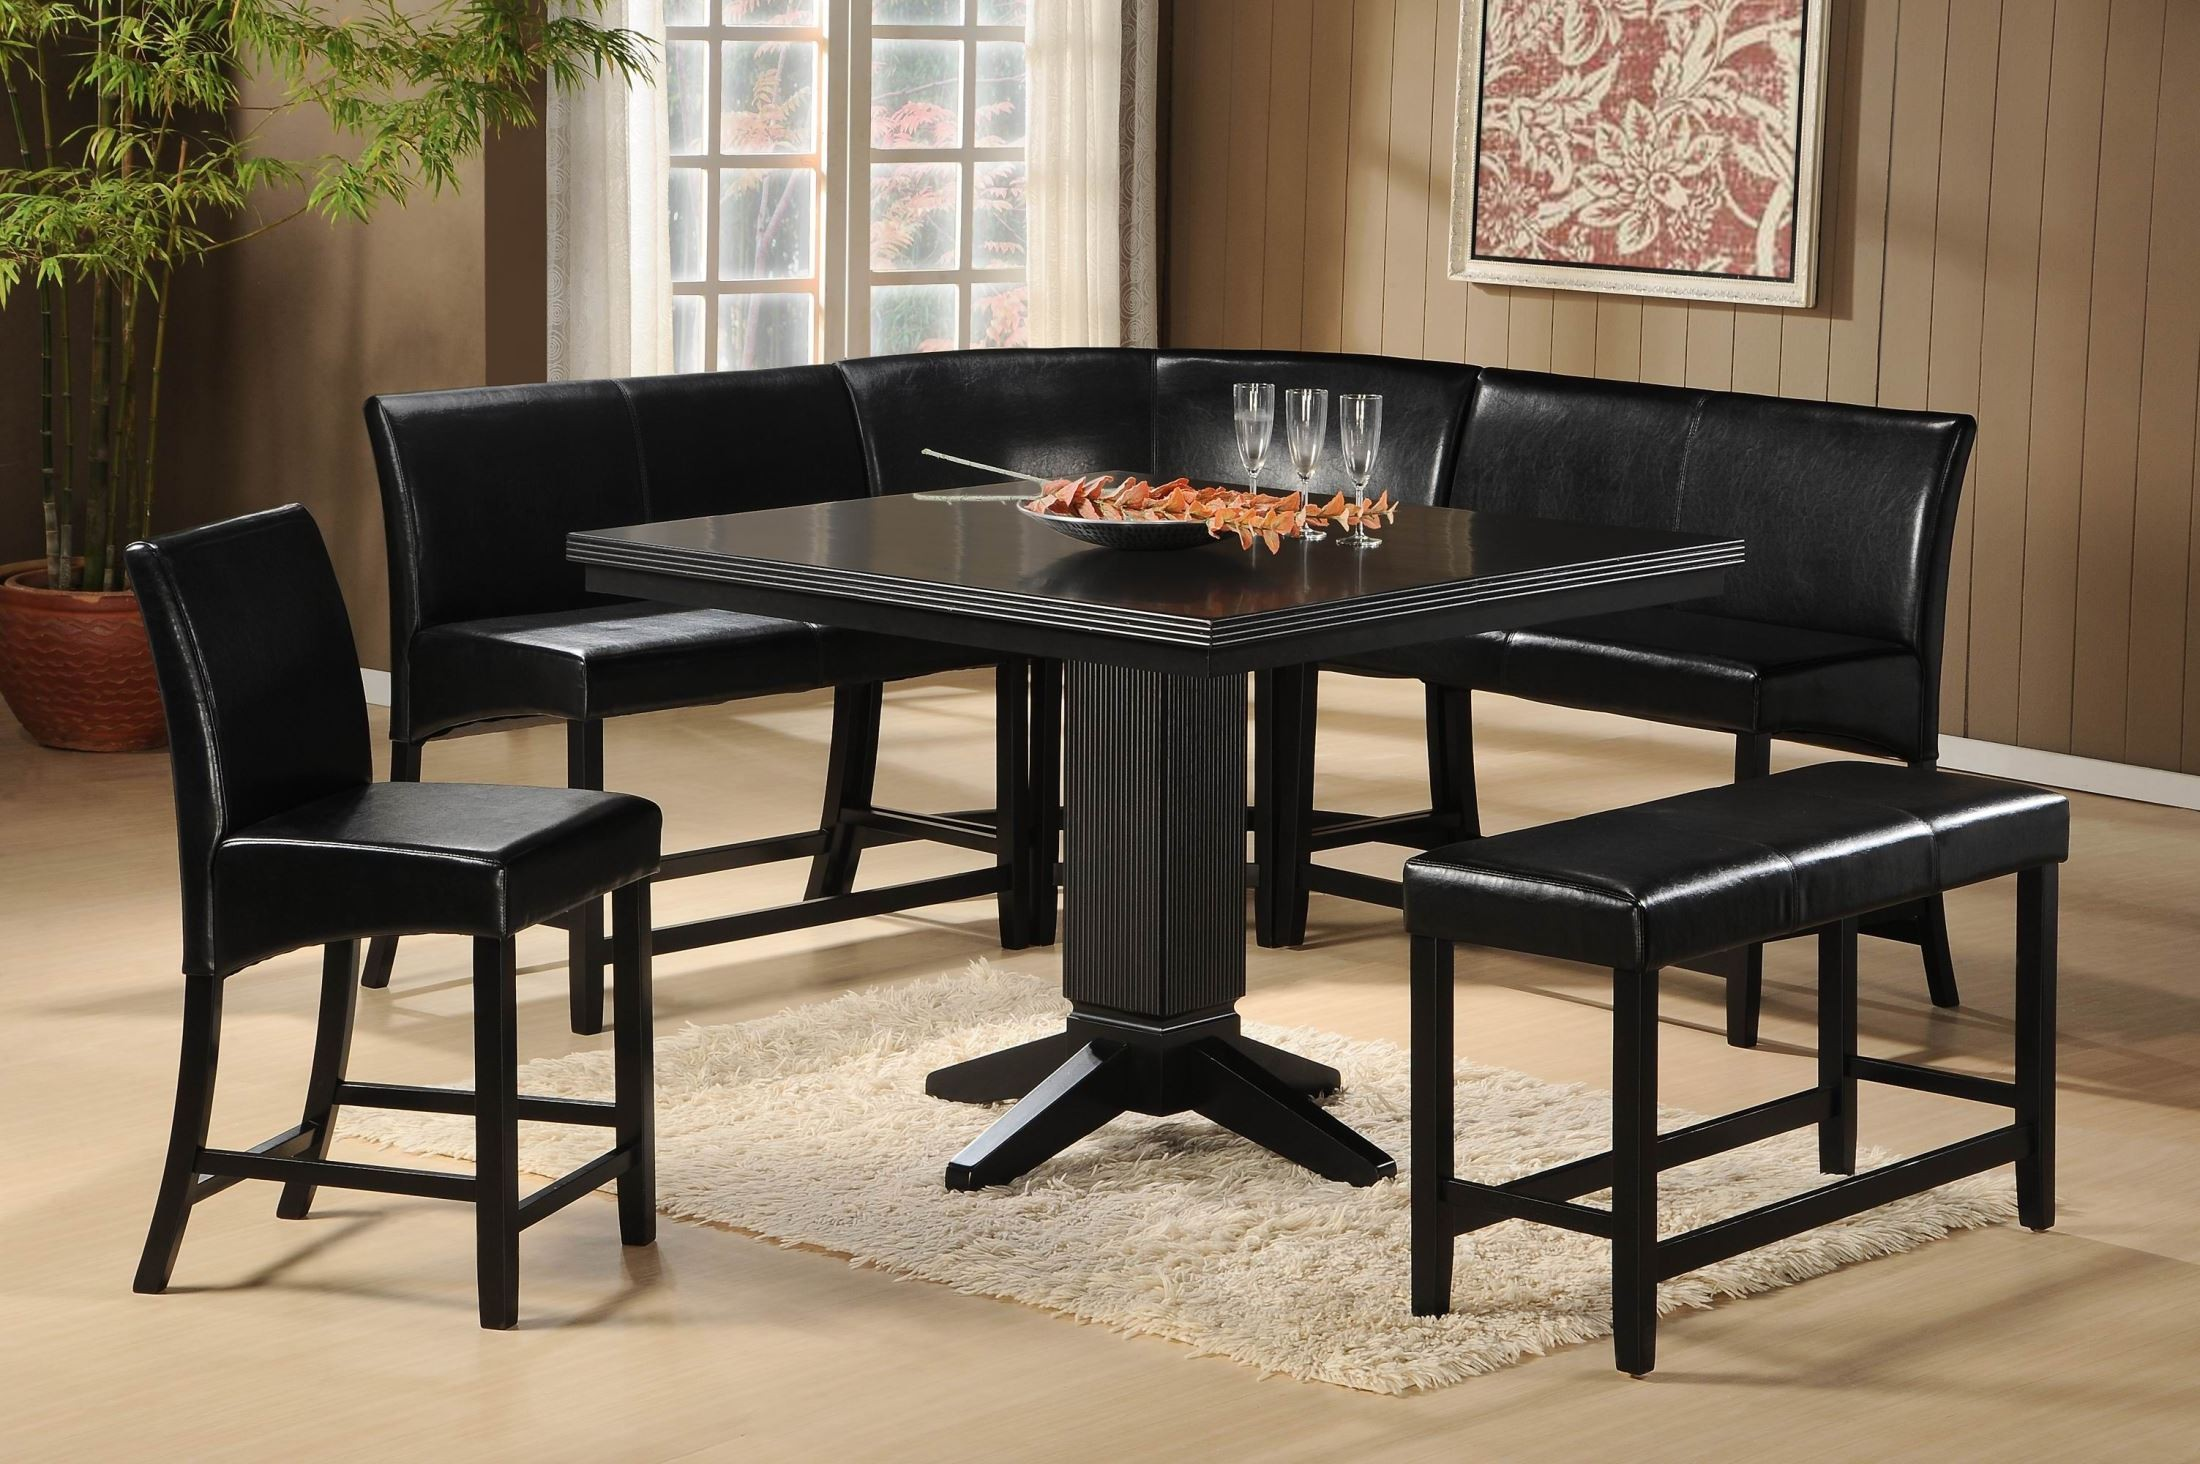 Counter Height Nook : Papario nook Counter Height Dining Table from Homelegance (5351-36 ...